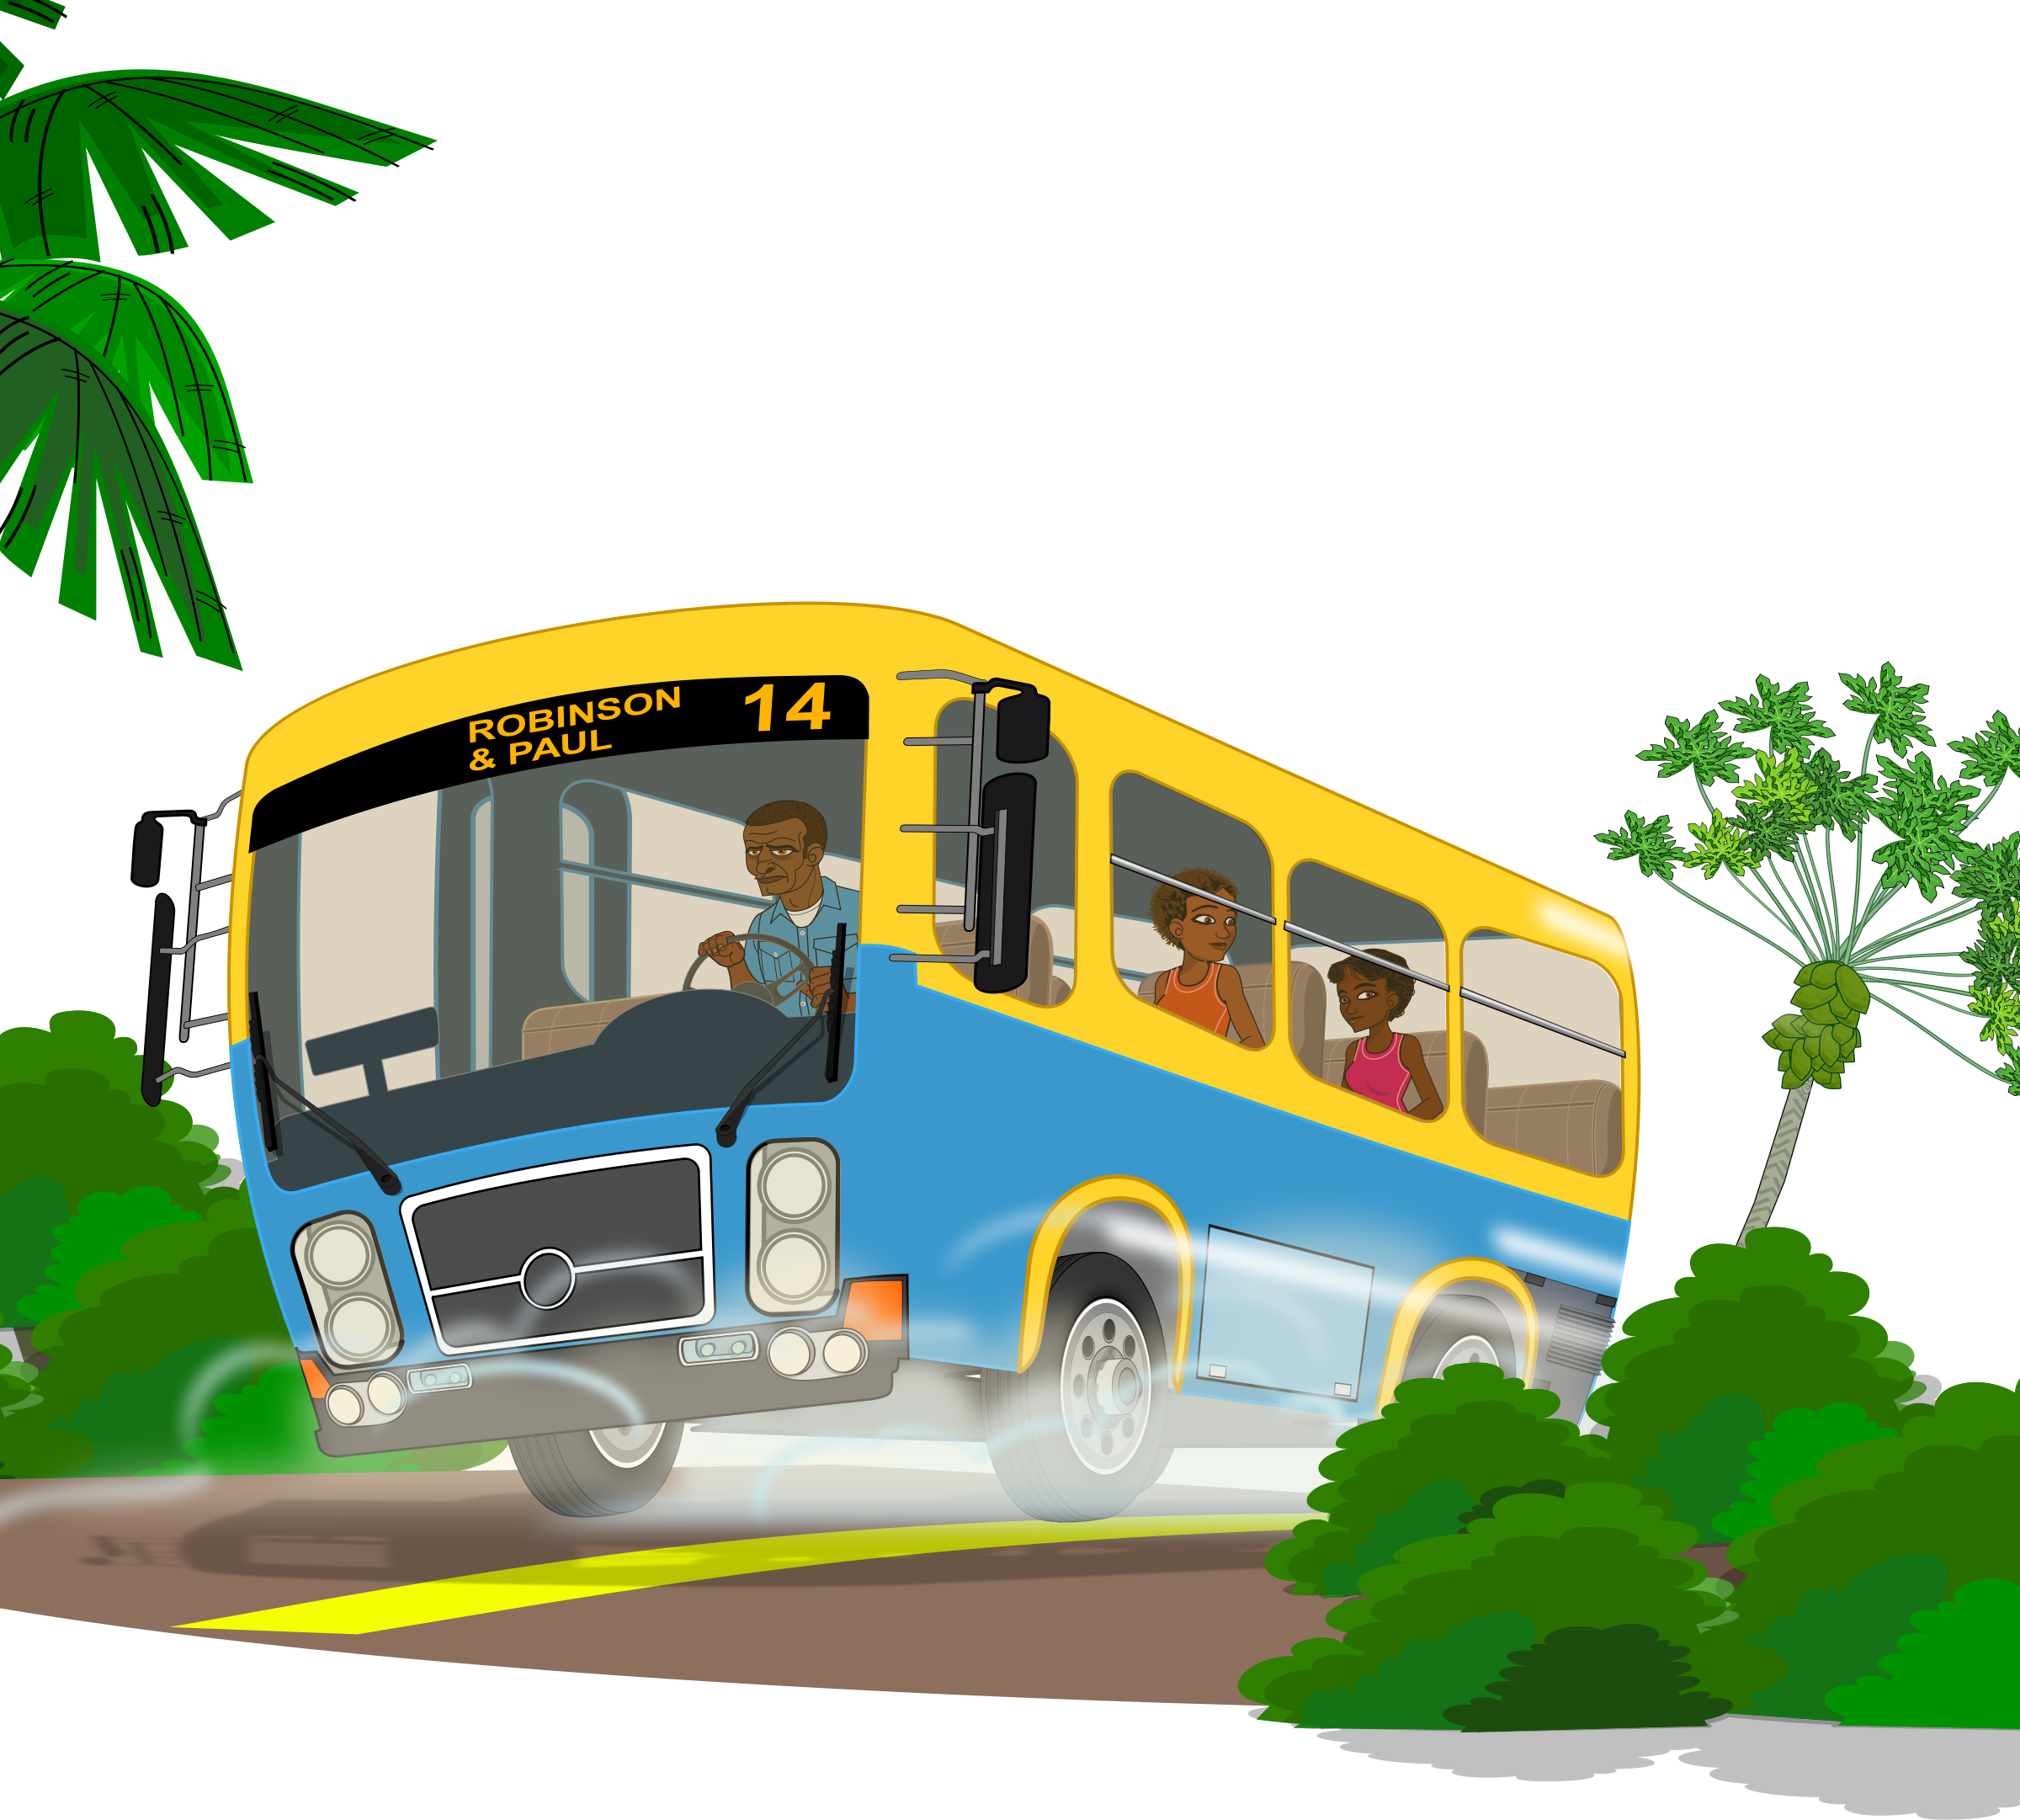 Island school bus by Markacio